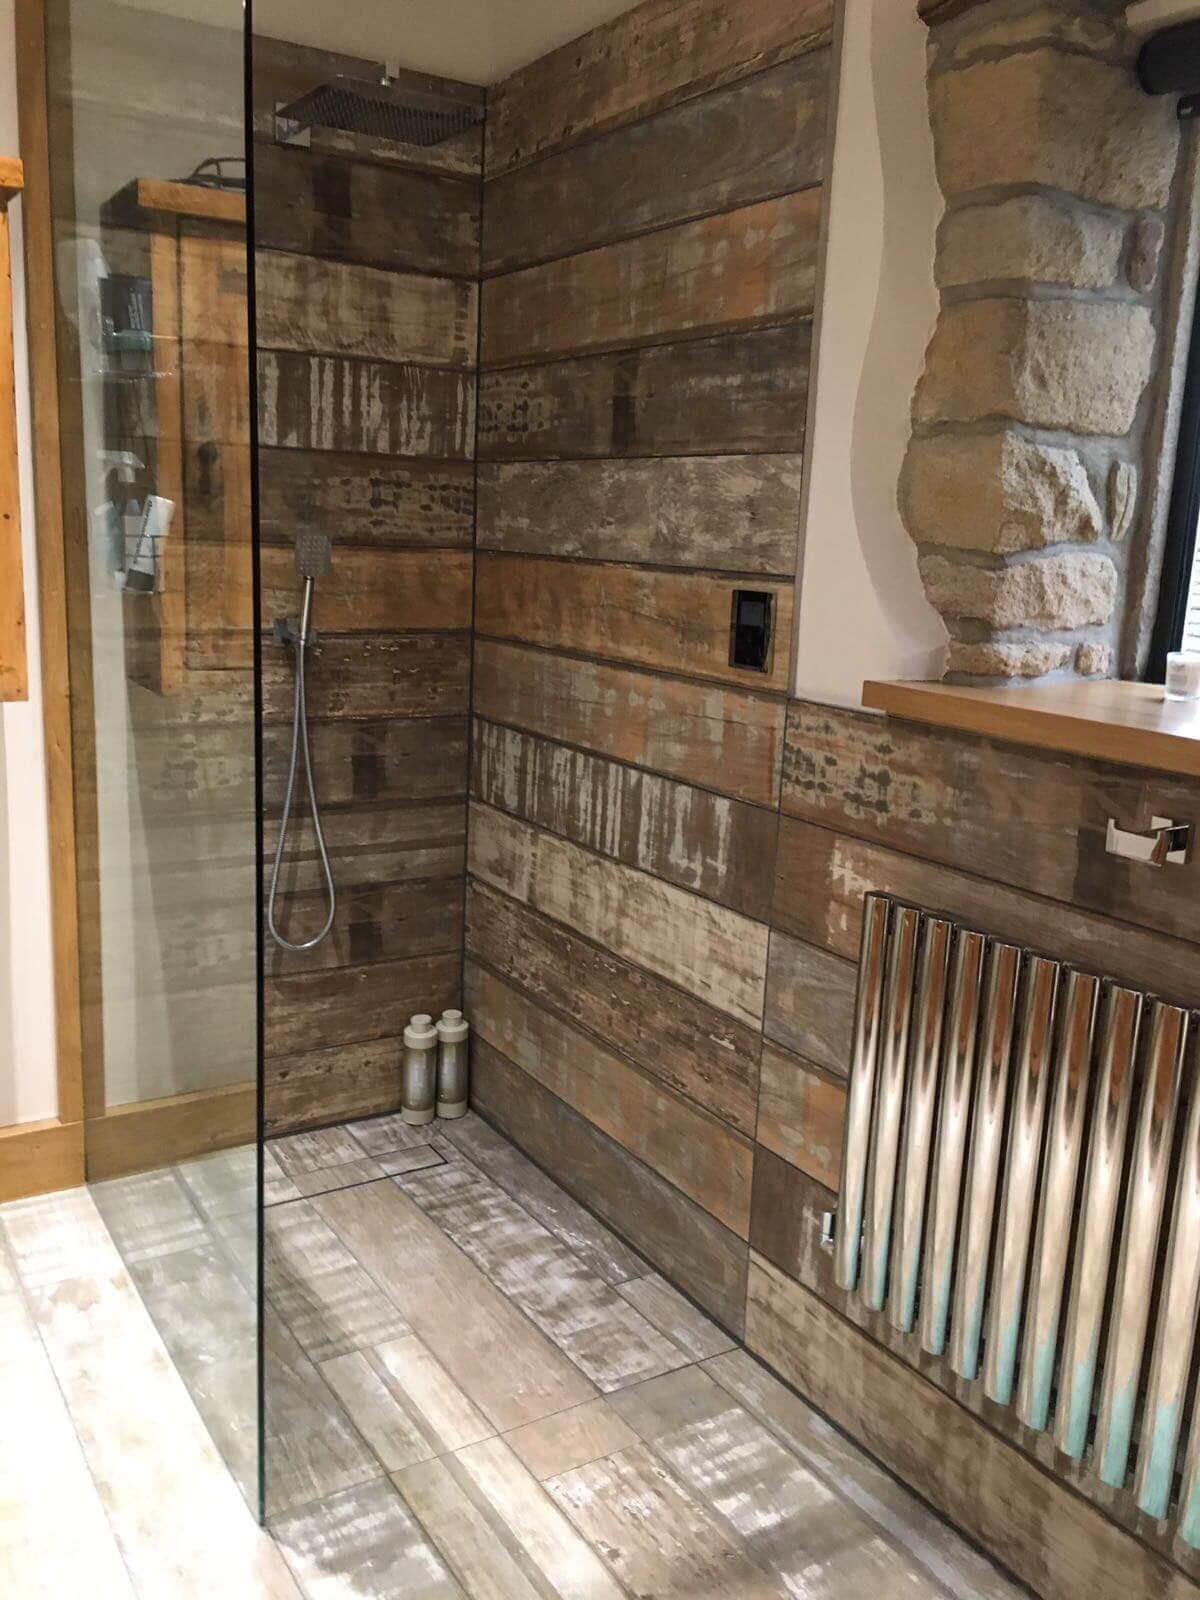 Wet room bathroom installers lancashire uk harp ceramics impy wet room with linear inserted tile trap tray that hides the waste and looks like one floor wood effect plank wall and floor tiles and wood embossed dailygadgetfo Choice Image